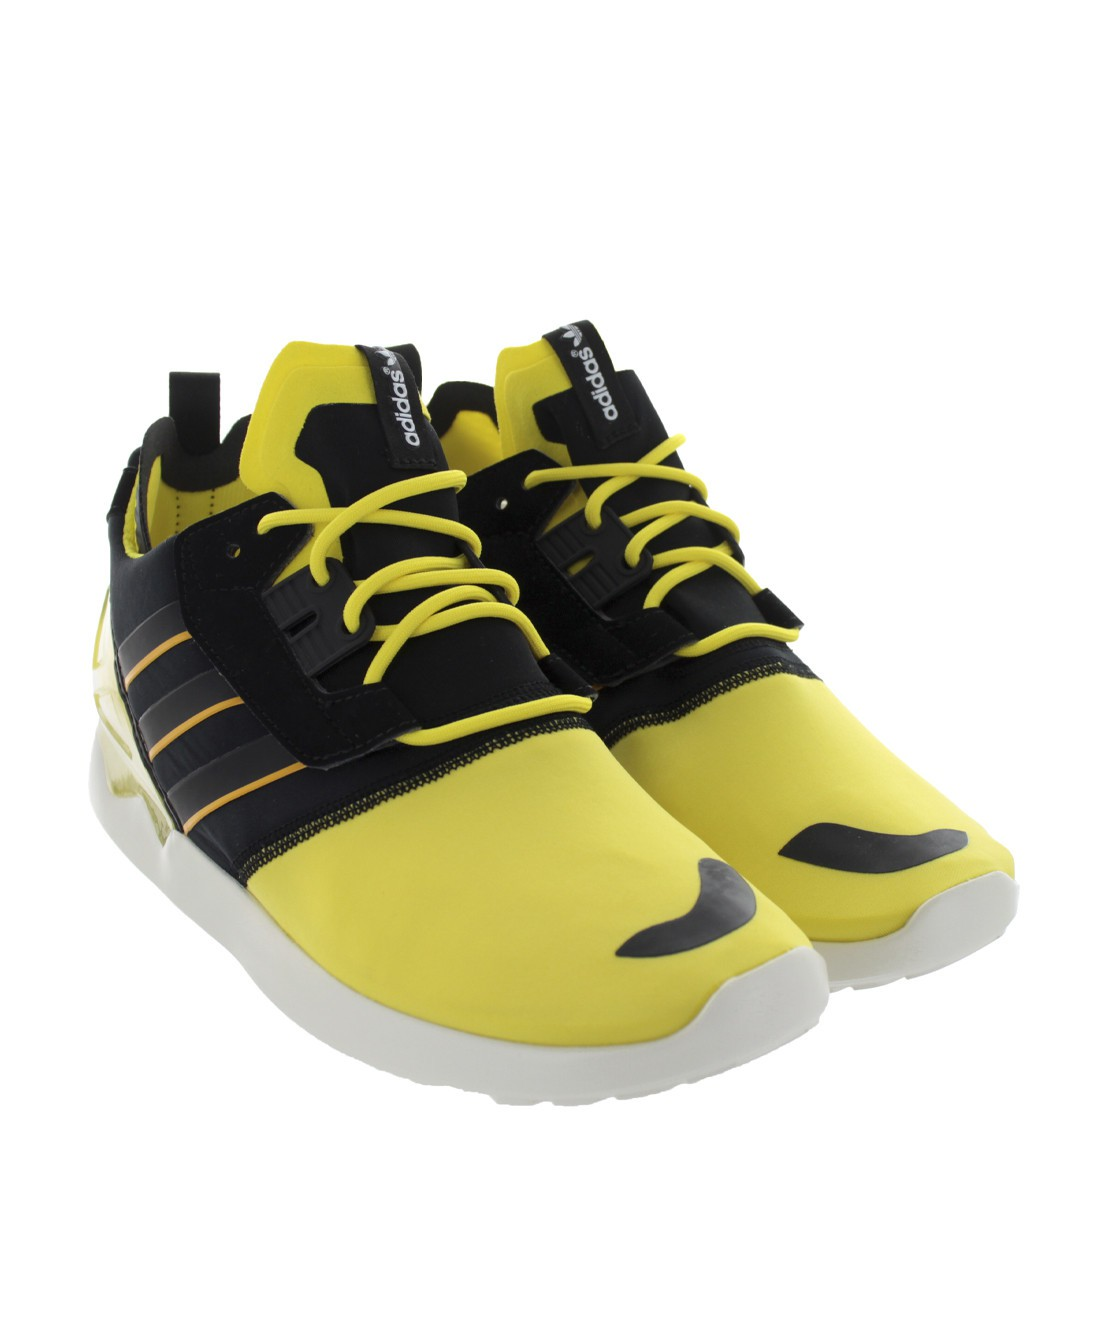 adidas zx 8000 boost running shoes shoes trainers yellow